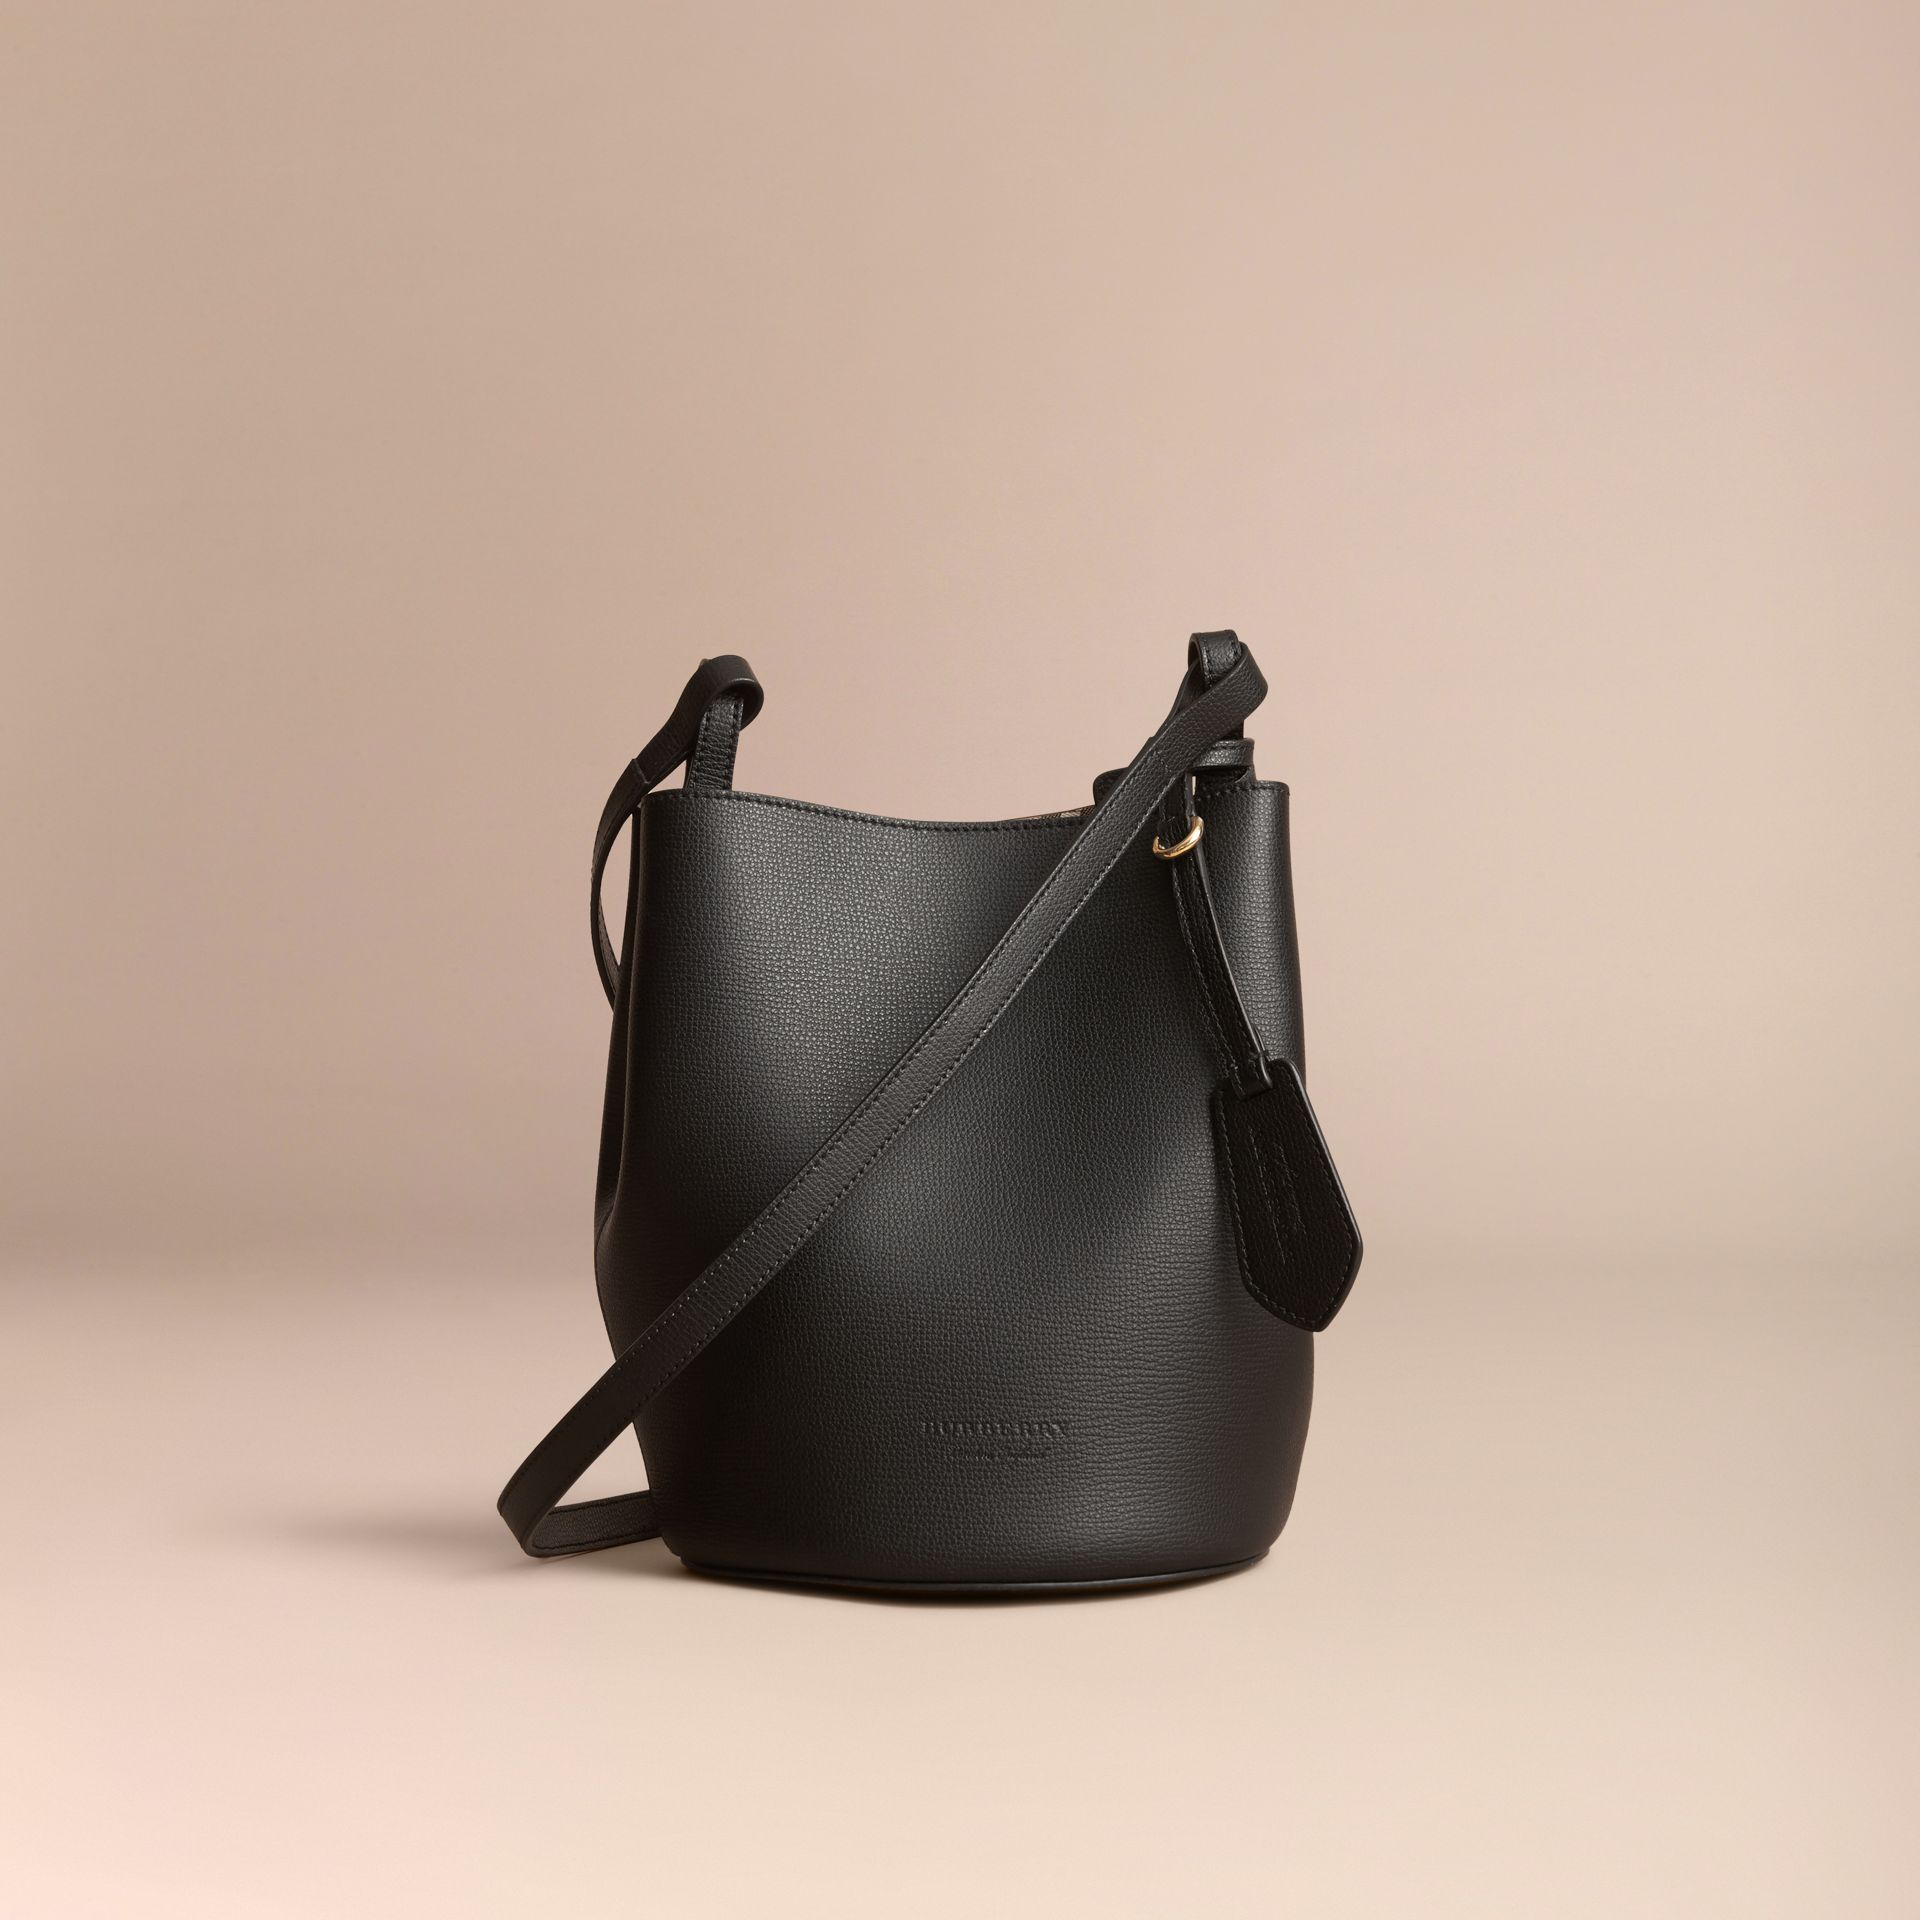 Leather and Haymarket Check Crossbody Bucket Bag in Black - Women | Burberry Singapore - gallery image 7